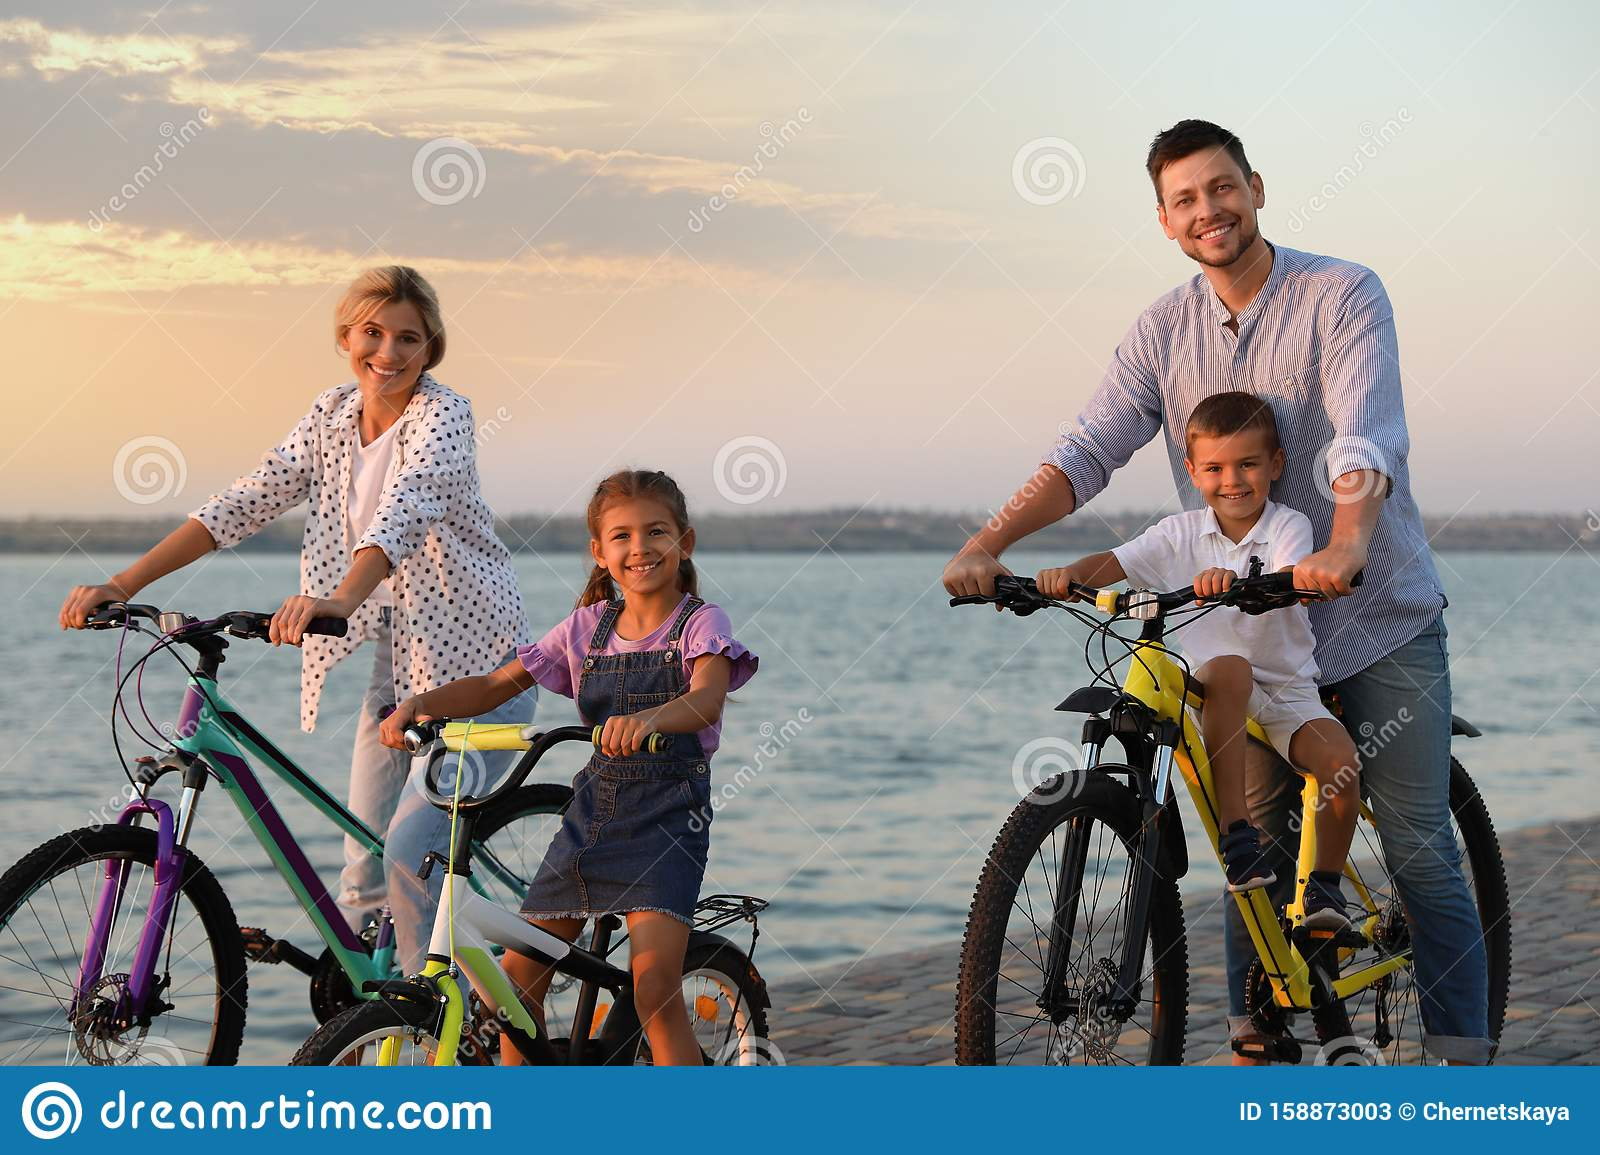 Happy family with children riding bicycles near river